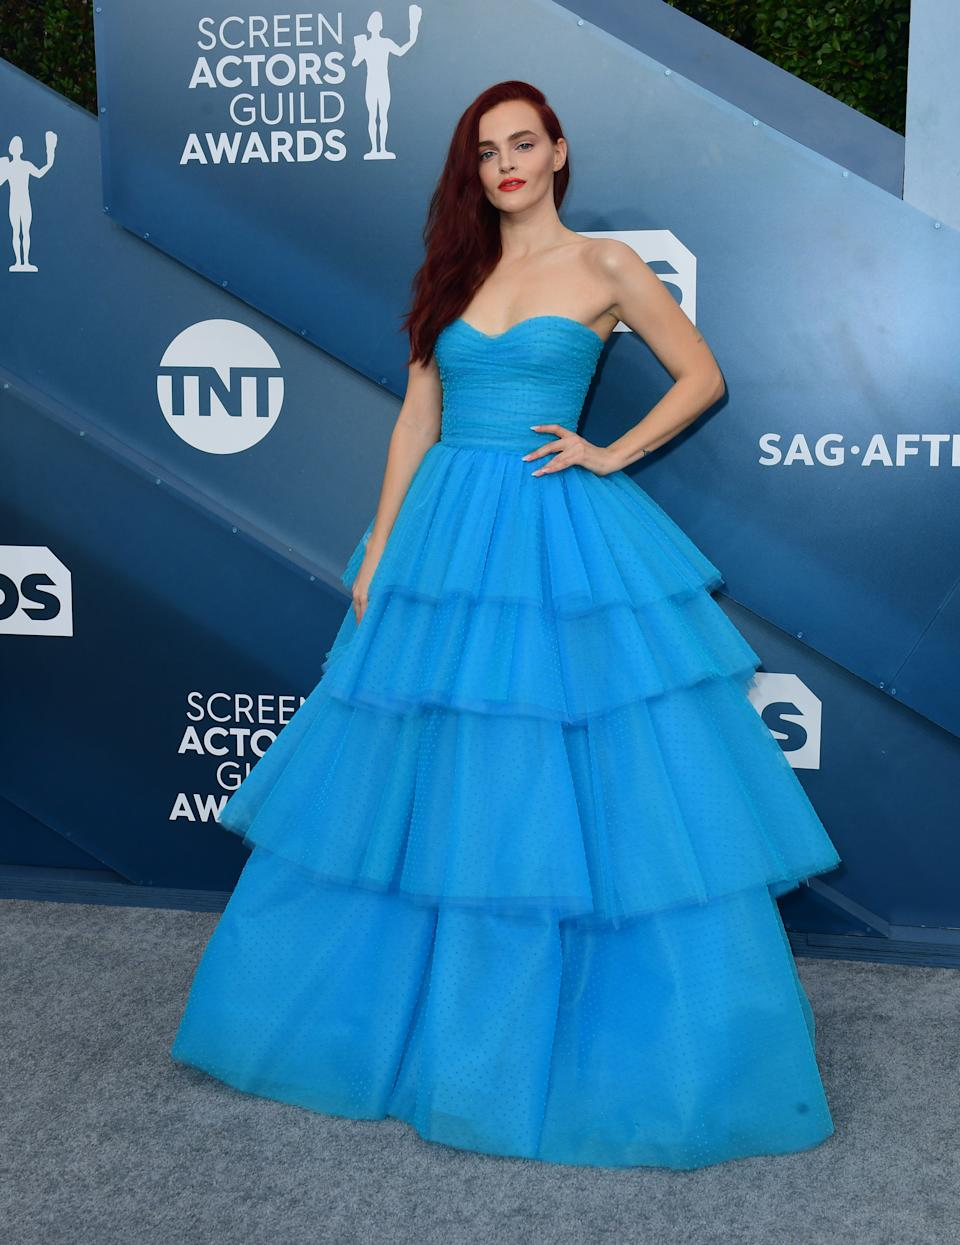 """<h2>Madeline Brewer in Monique Lhuillier</h2><br>This <em>The Little Mermaid</em>-inspired tiered blue gown on Madeline Brewer is as perfect as her performance in both <em>Hustlers</em> and <em>The Handmaid's Tale</em>.<span class=""""copyright"""">Photo by FREDERIC J. BROWN/AFP via Getty Images.</span>"""